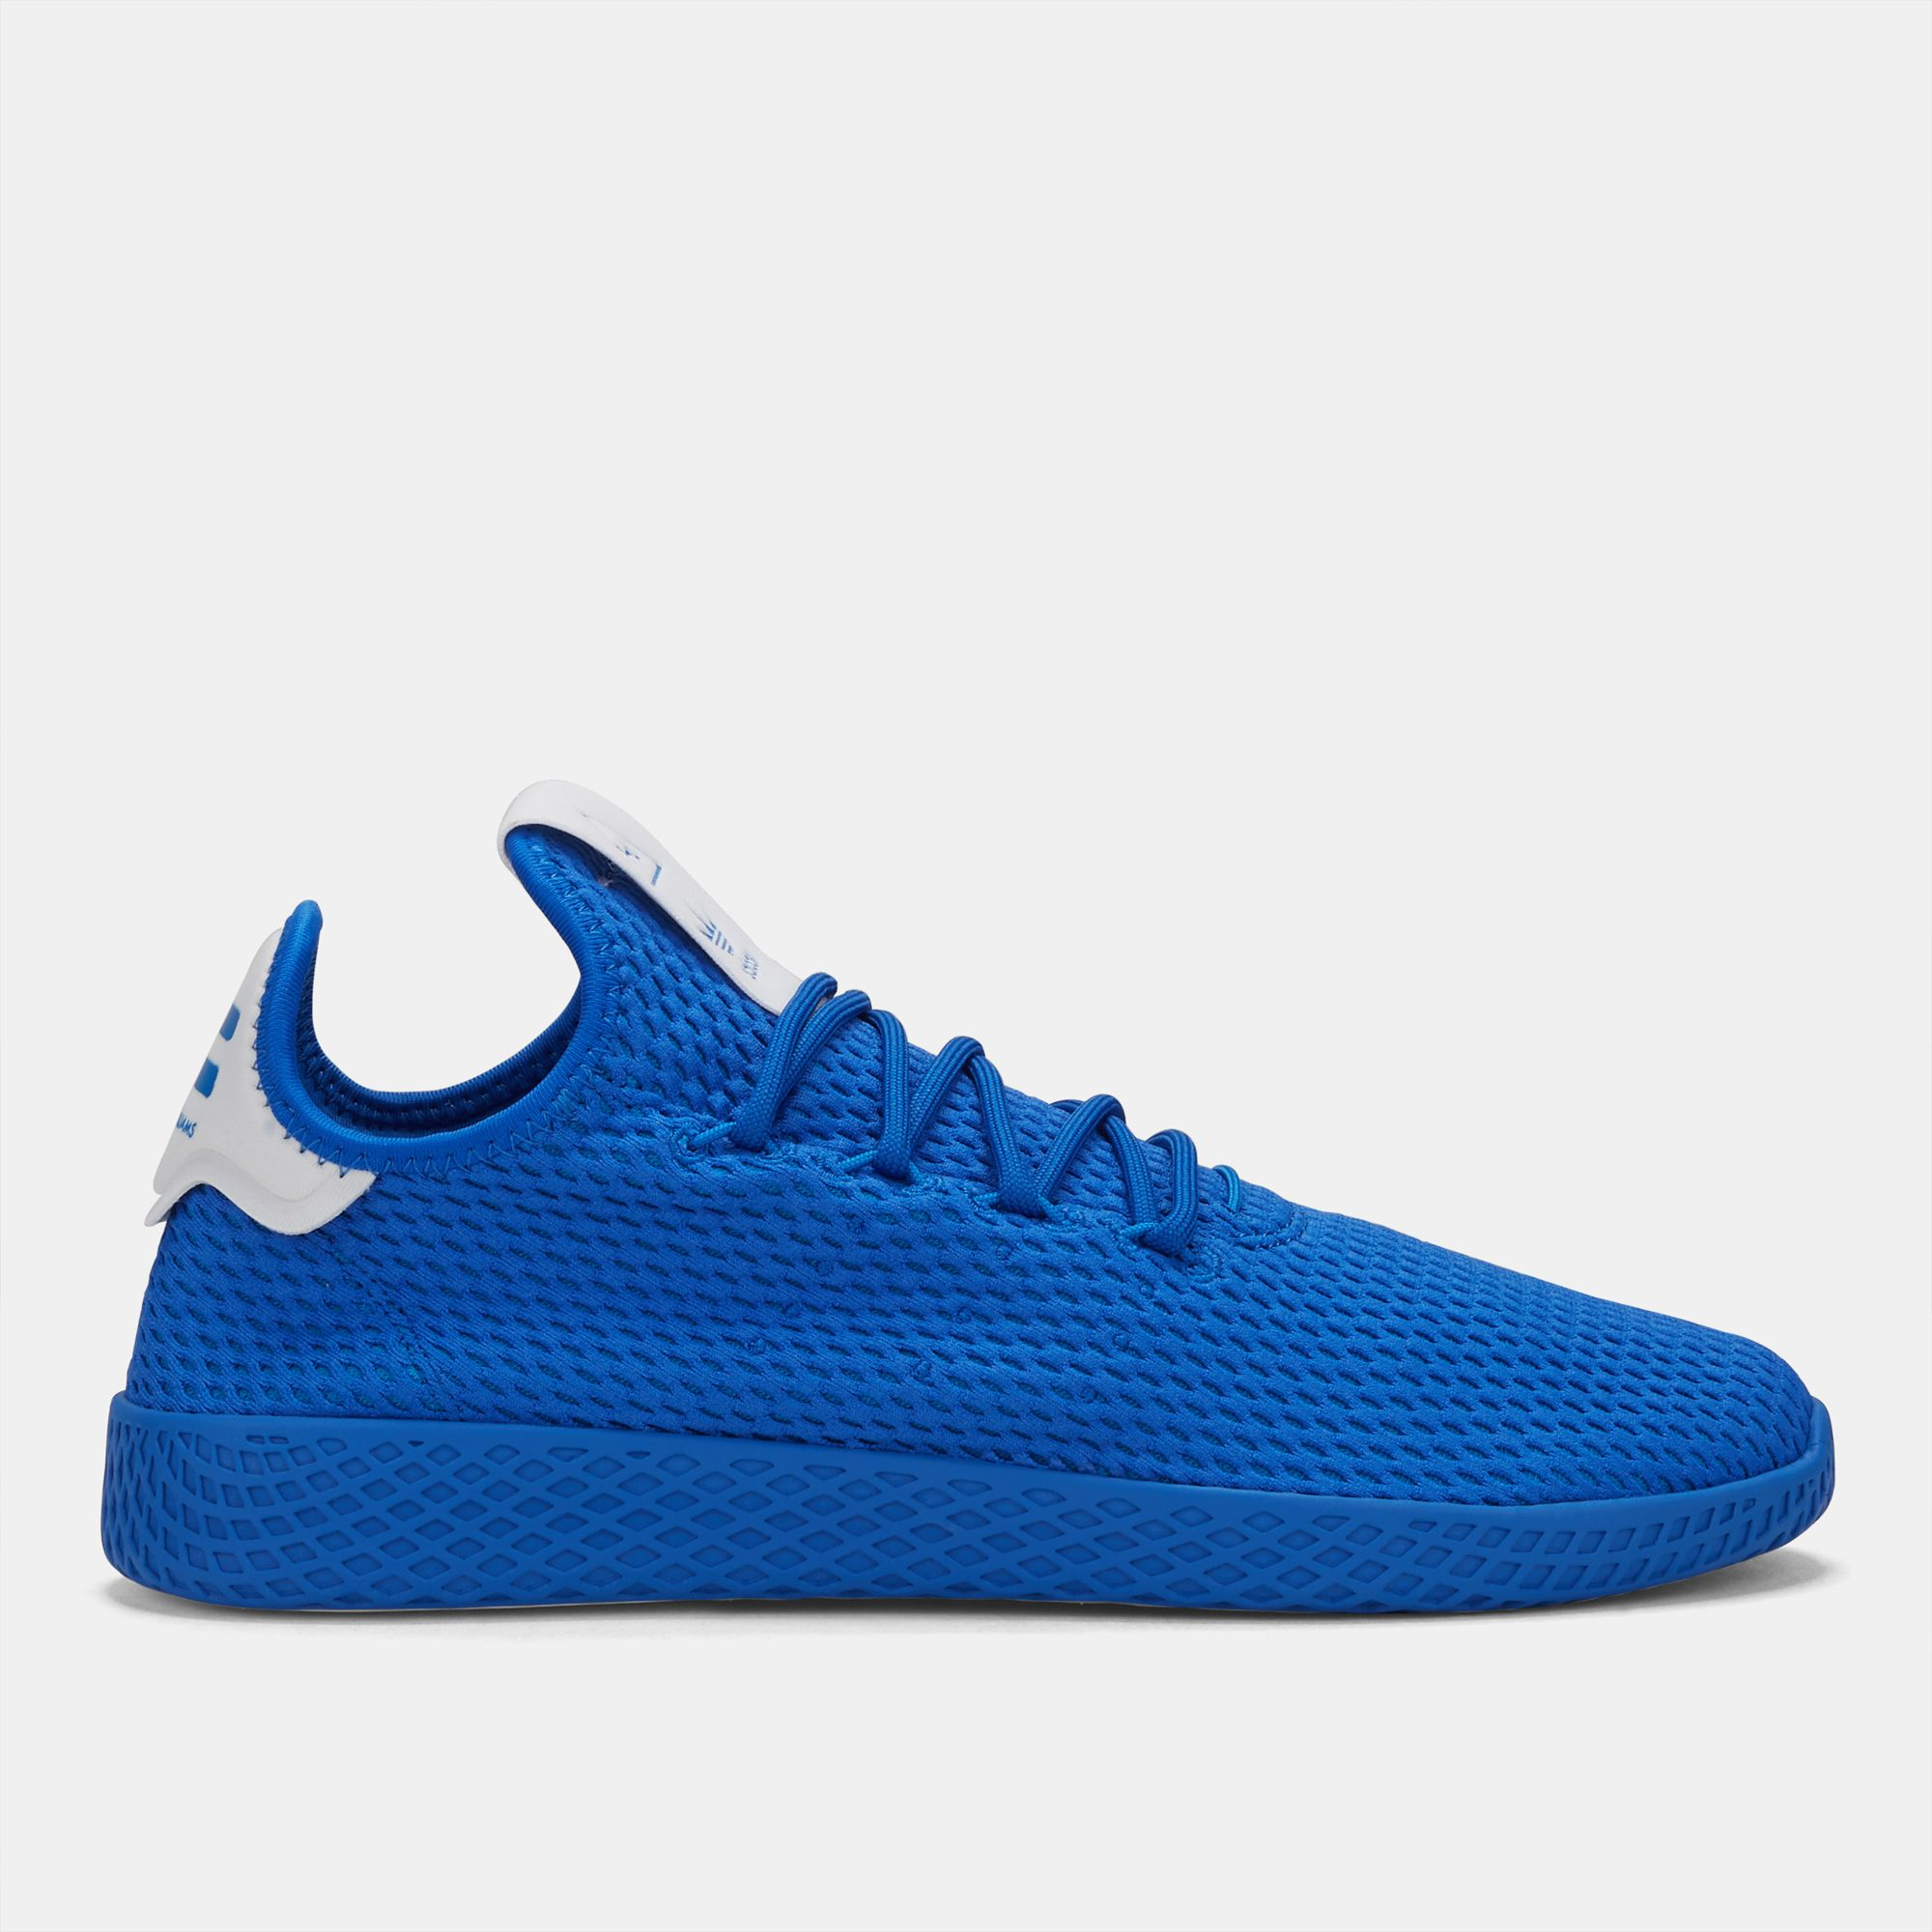 d88d4493c7bd adidas Originals Pharrell Williams Tennis HU Shoe